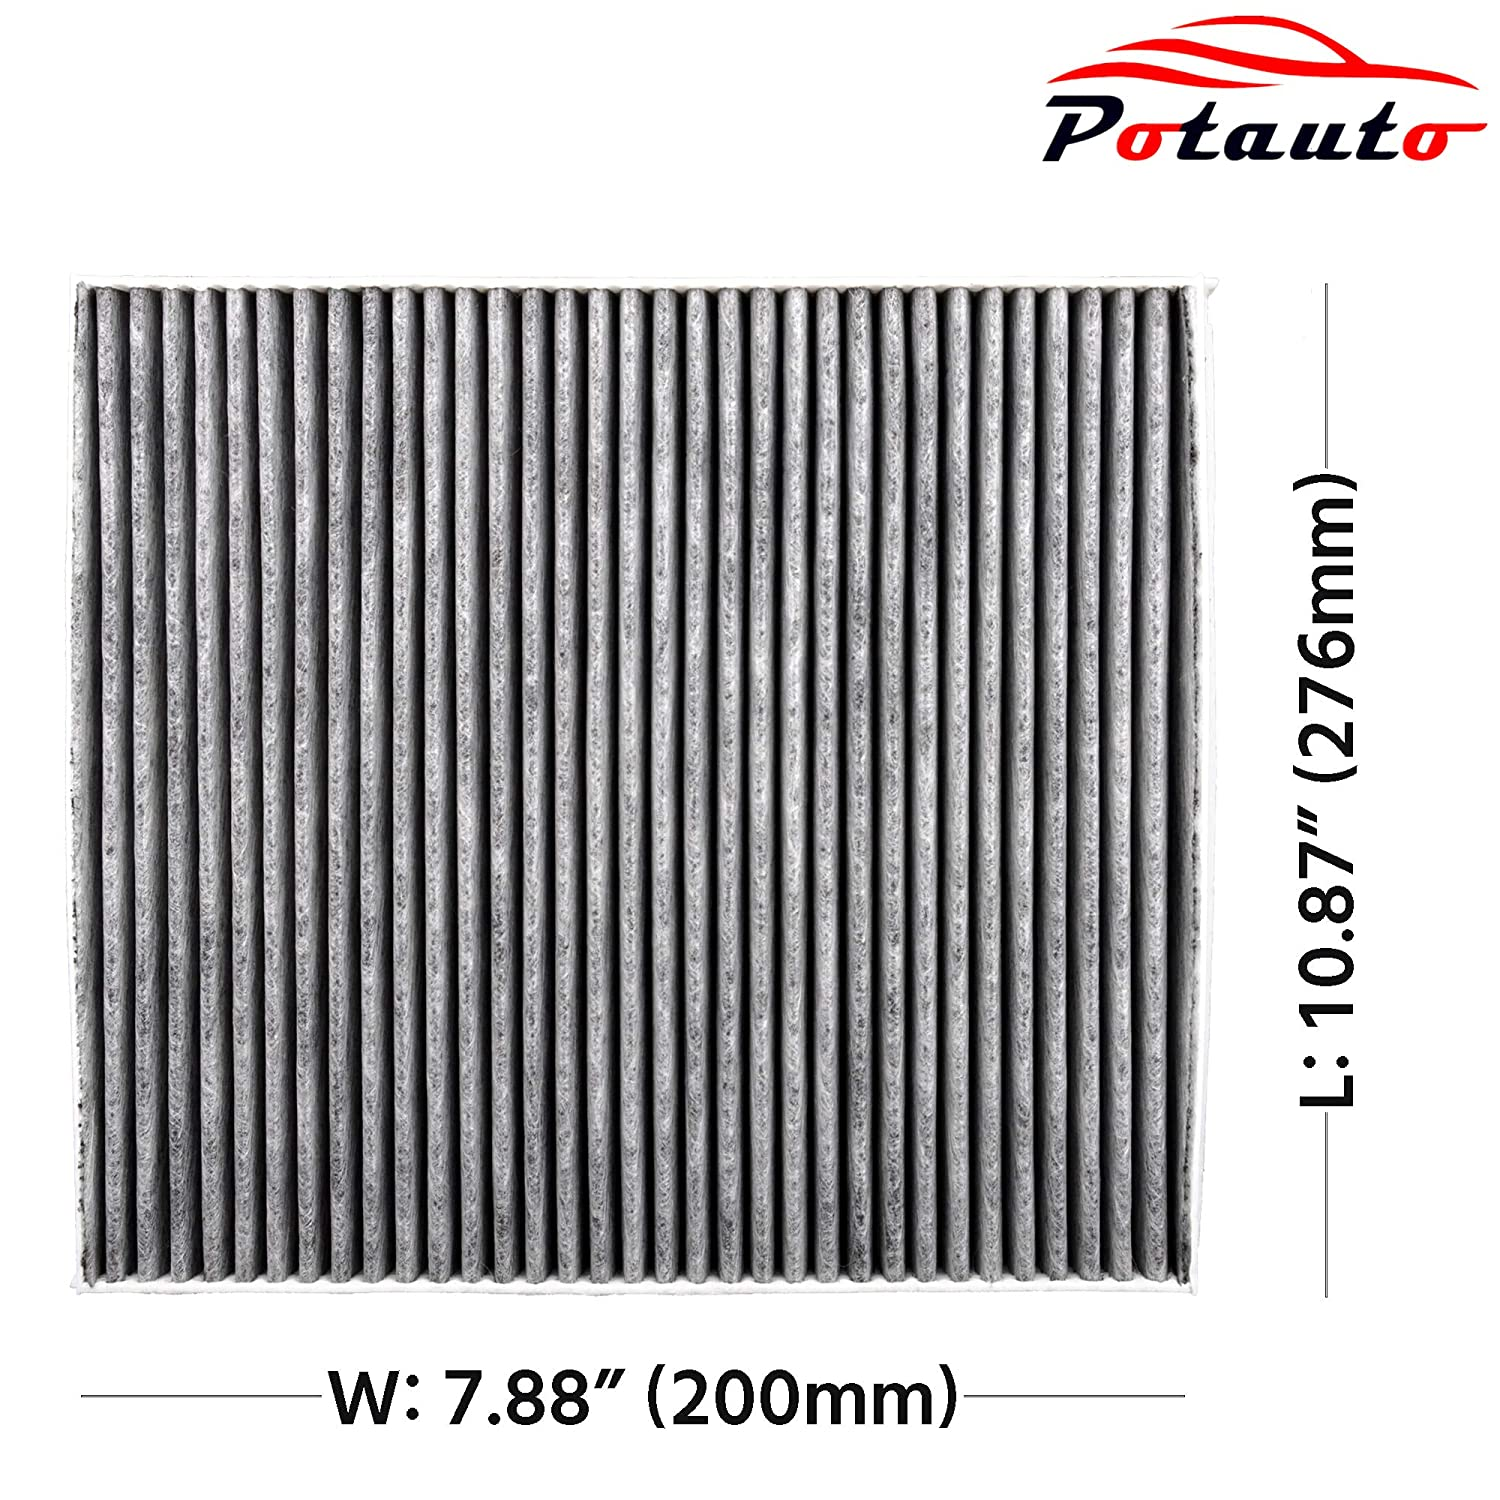 CF11668 DODGE Charger POTAUTO MAP 1031C Challenger Replacement Activated Carbon Car Cabin Air Filter for CHRYSLER 300